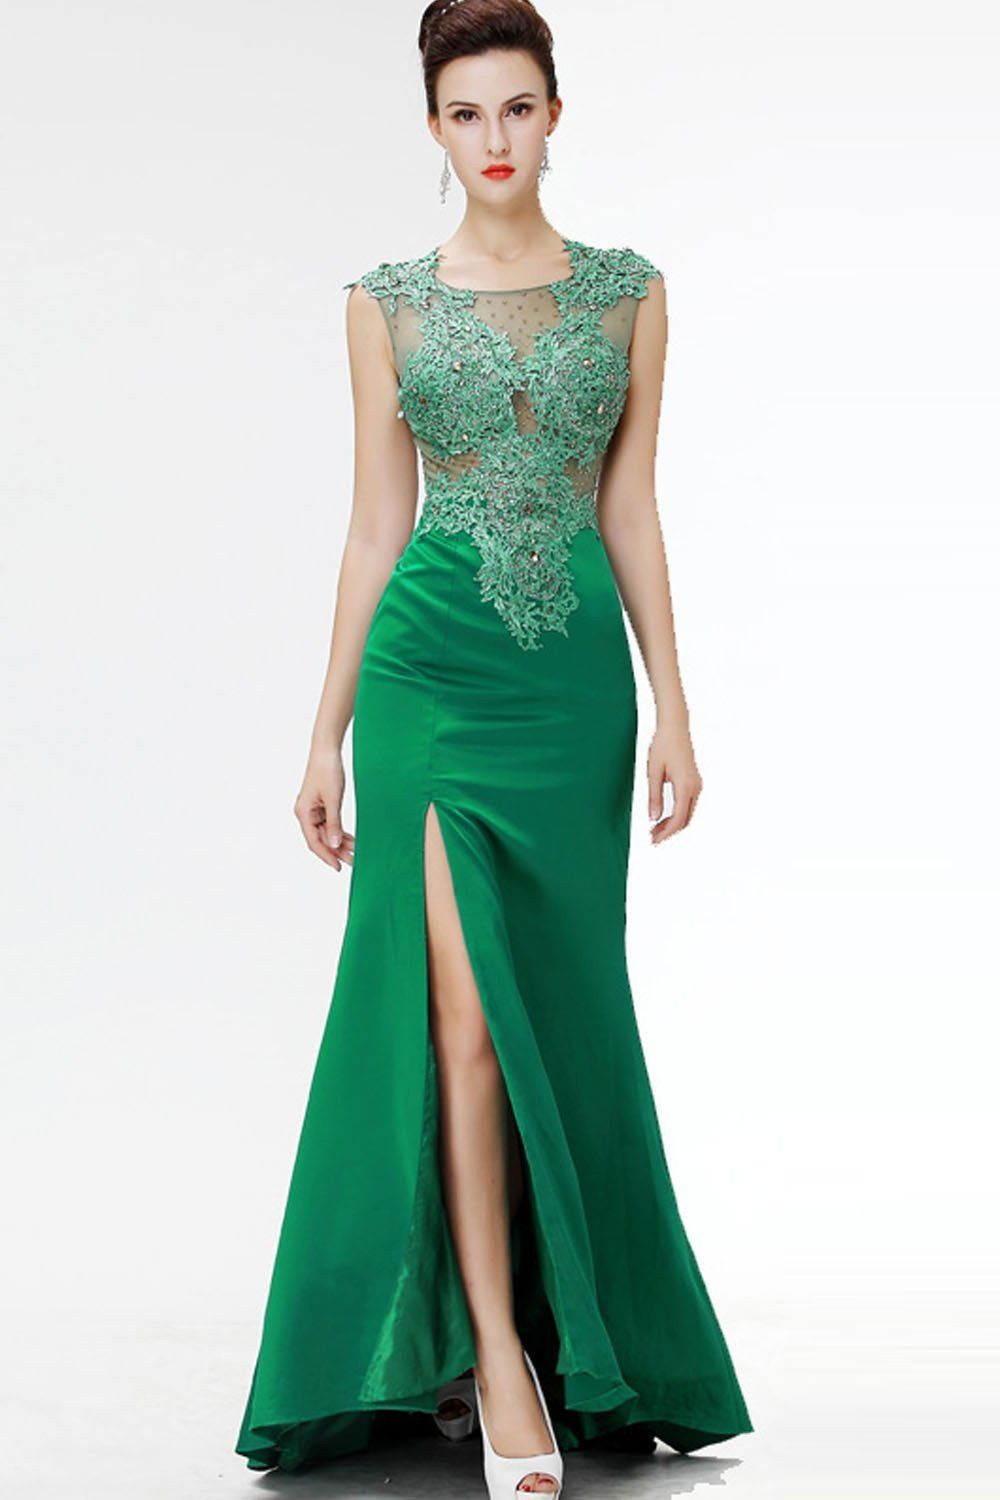 Green lace beaded see through mermaid sexy prom dresses ed